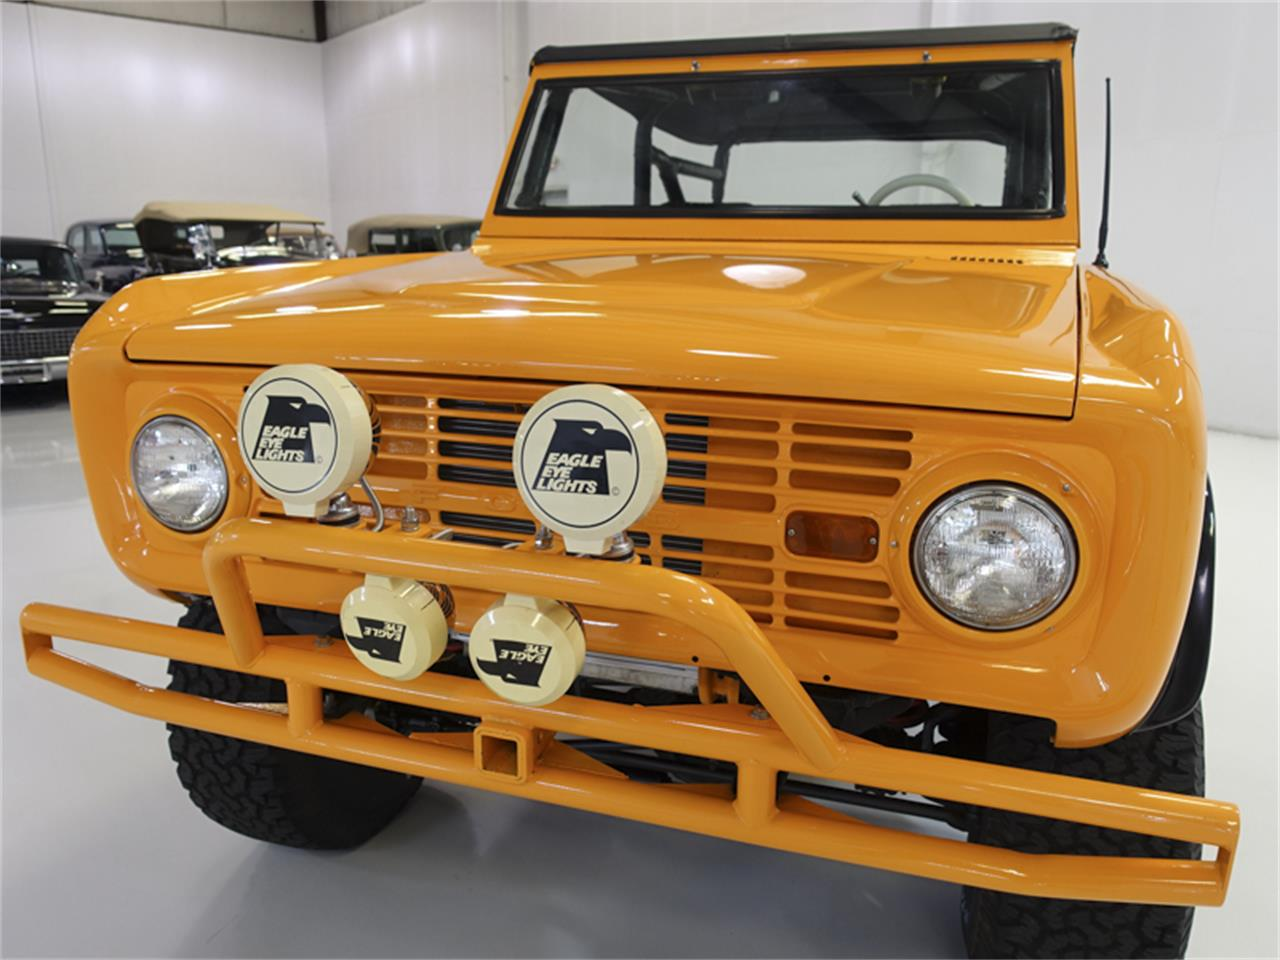 Large Picture of Classic 1967 Ford Bronco located in Saint Louis Missouri - $49,900.00 Offered by Daniel Schmitt & Co. - QIAT